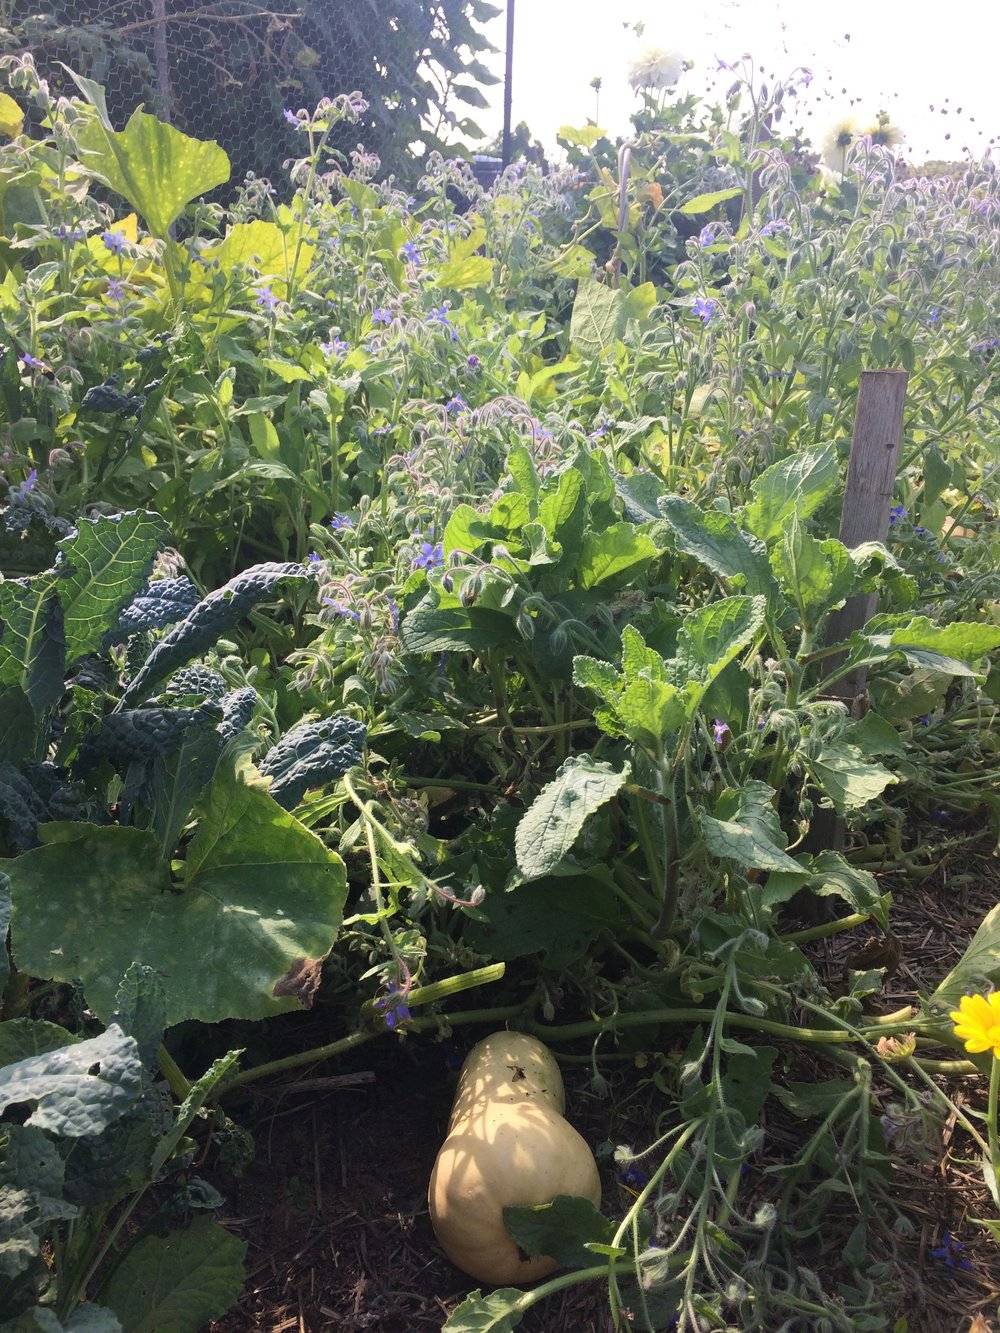 borage, kale, squash, strawberries, calendula